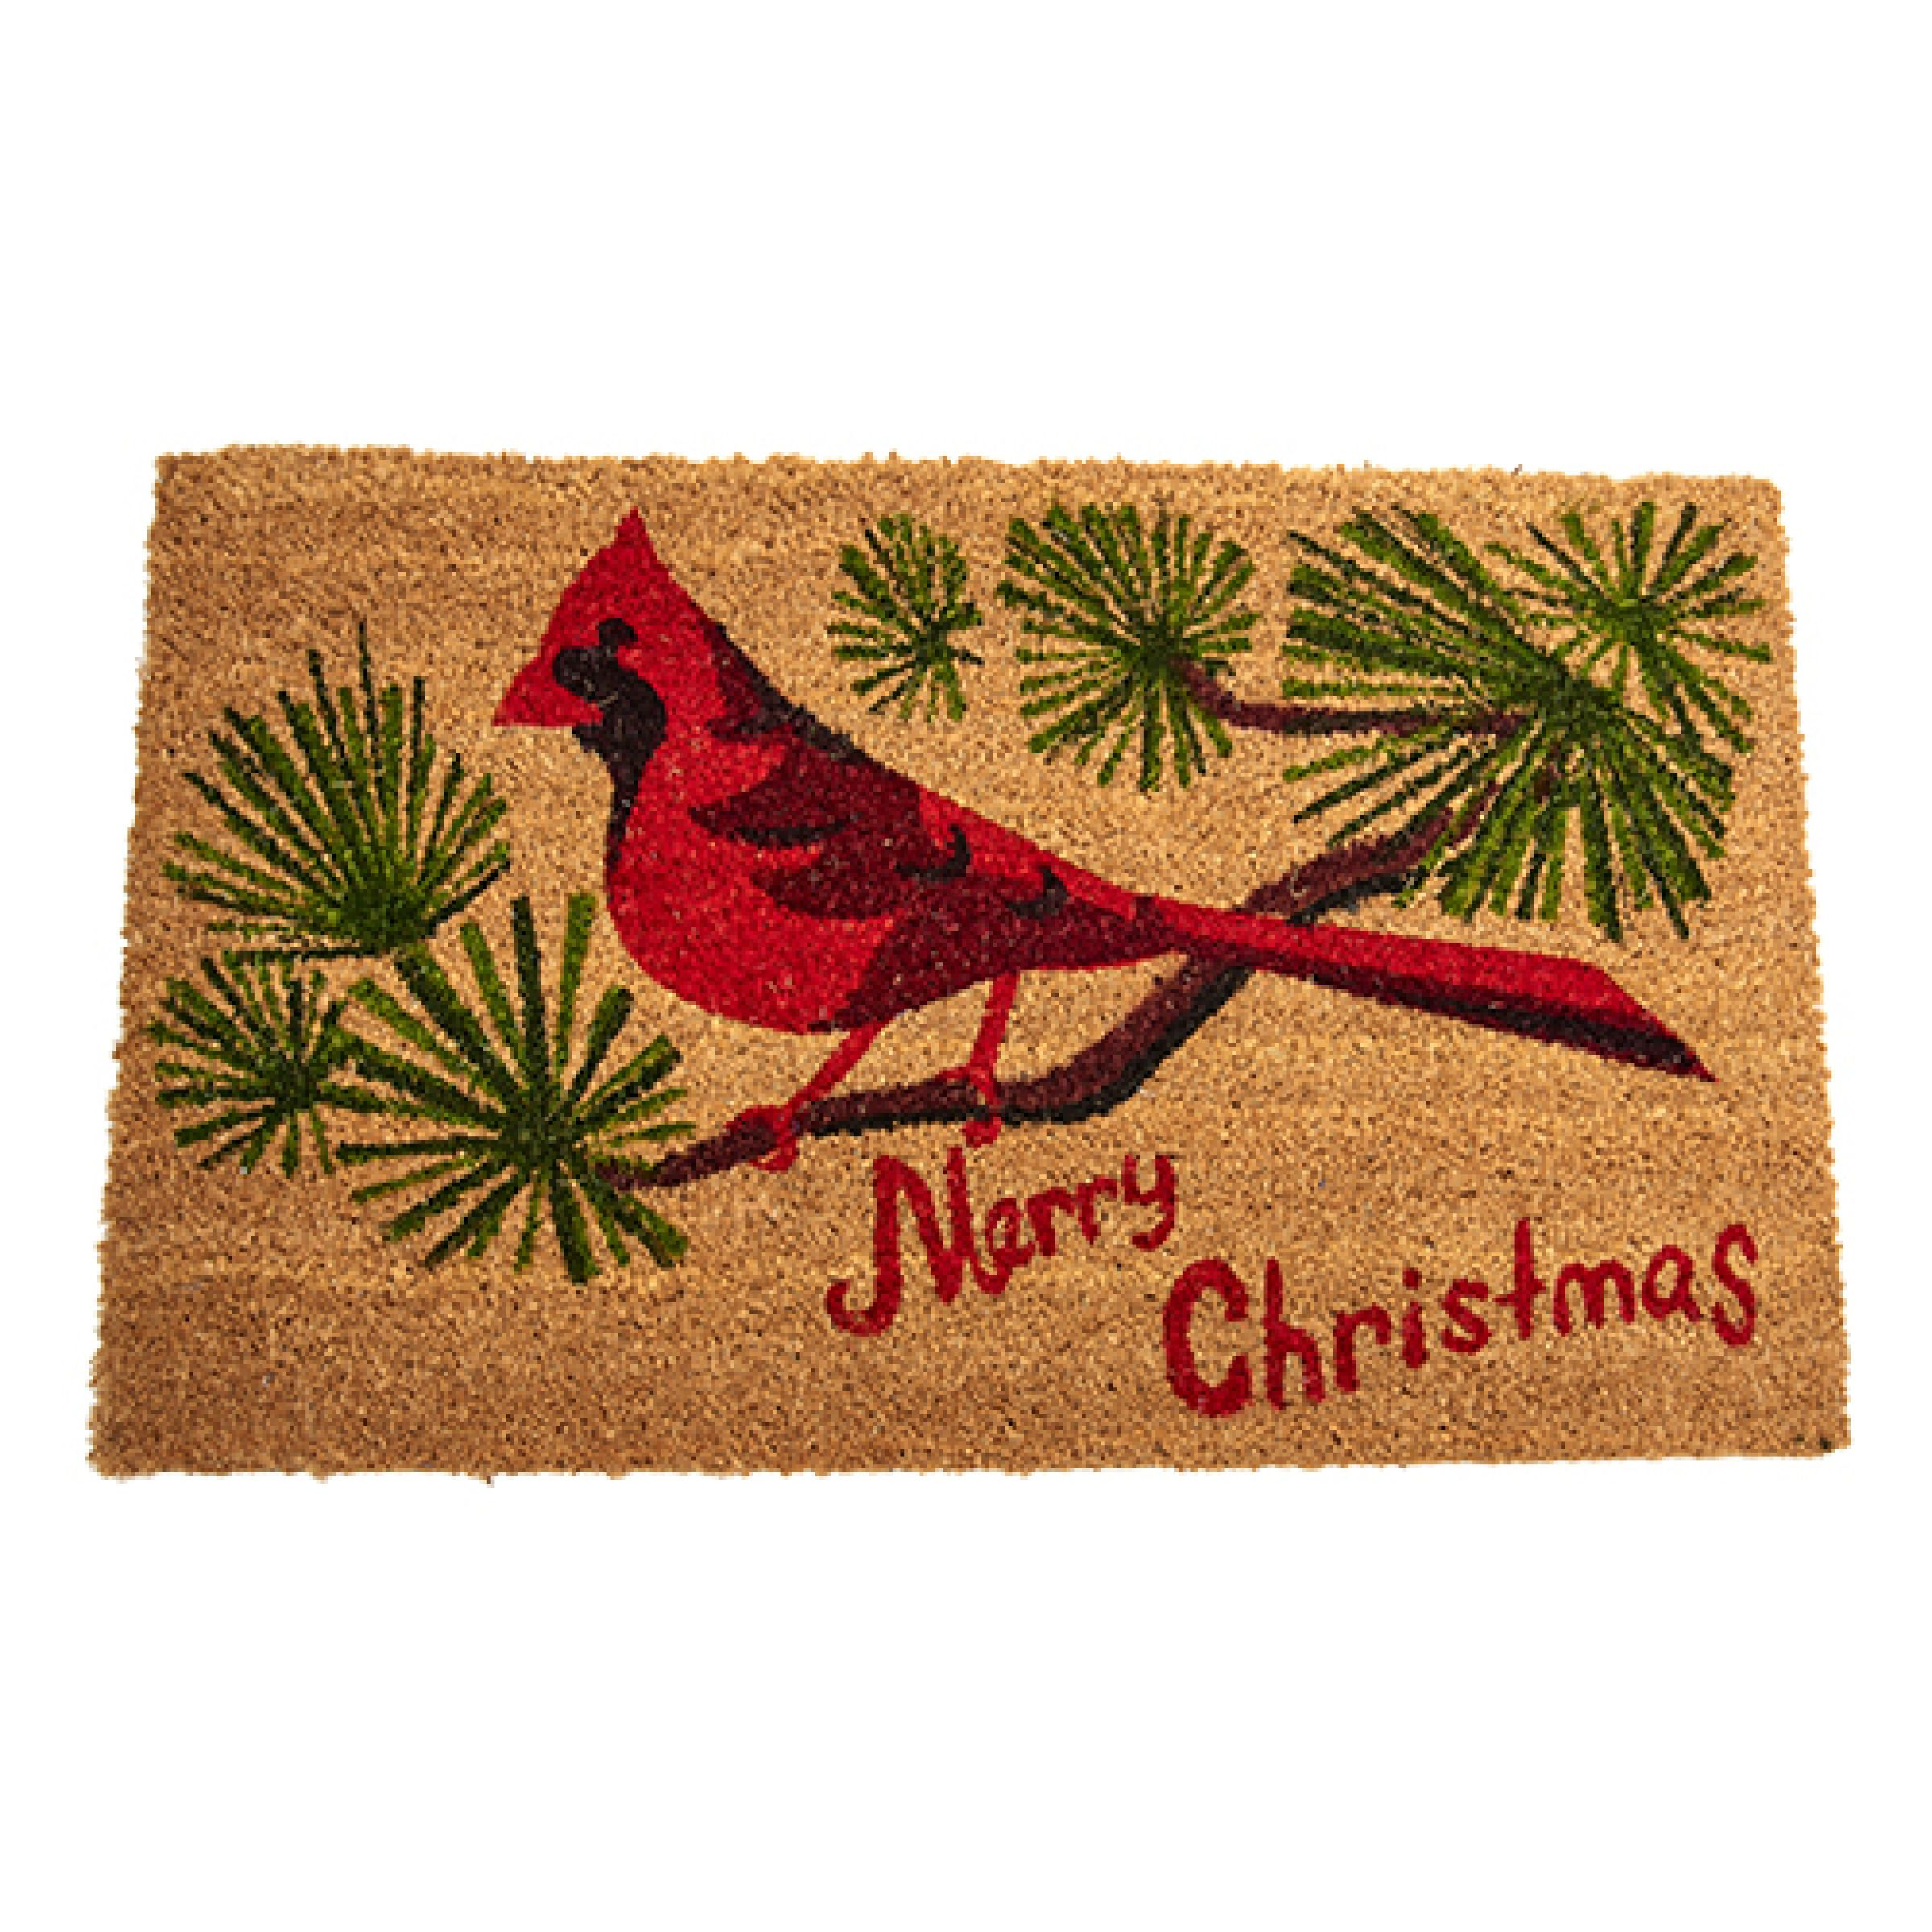 Boscov's Shower Curtains Cardinal Merry Christmas Choir Doormat Boscov S Boscov S Home